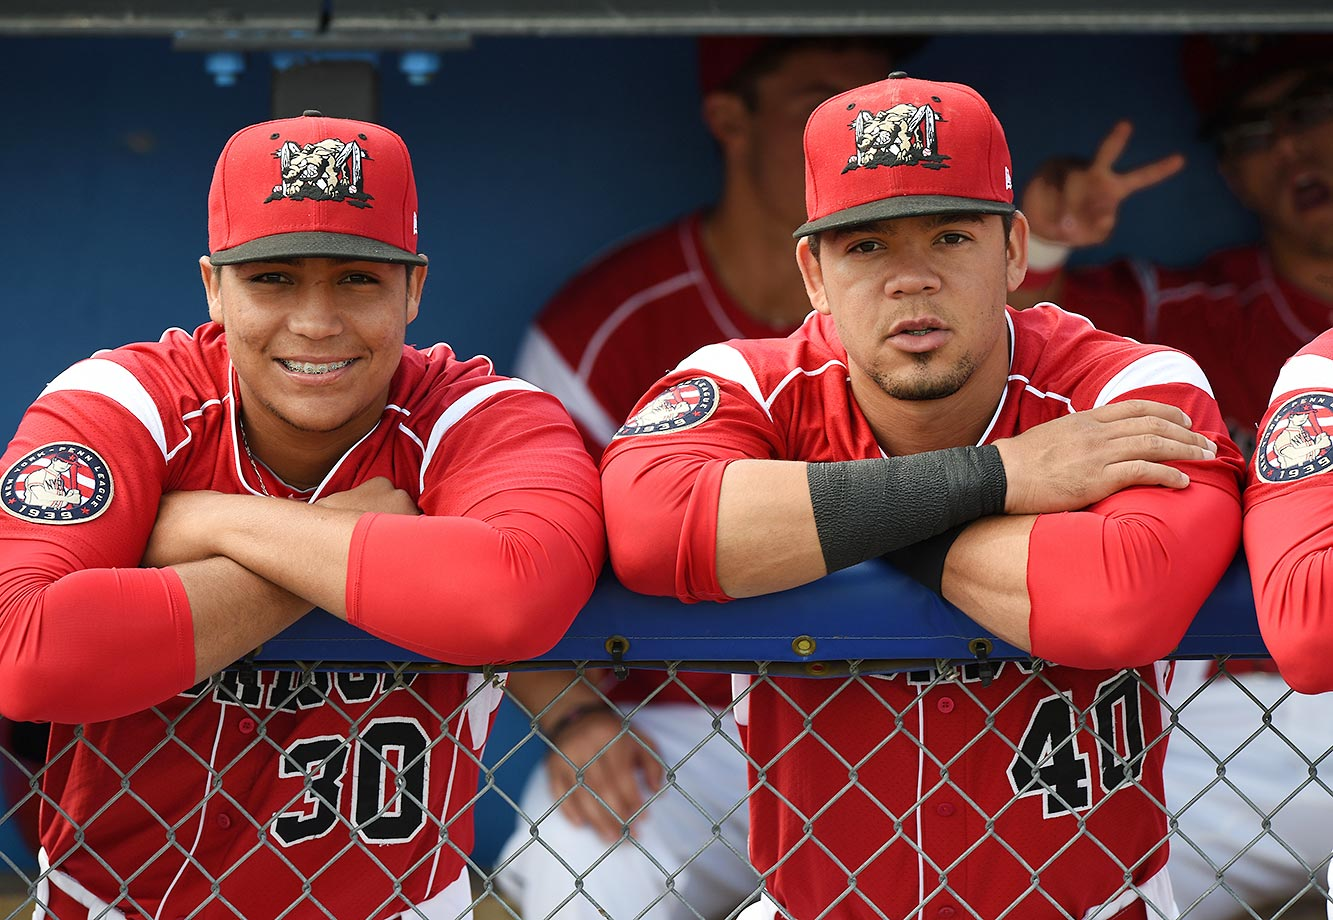 Carlos Duran and Victor Castro of the Batavia Muckdogs gets photobombed by Aaron Blanton, who's sitting on the bench.